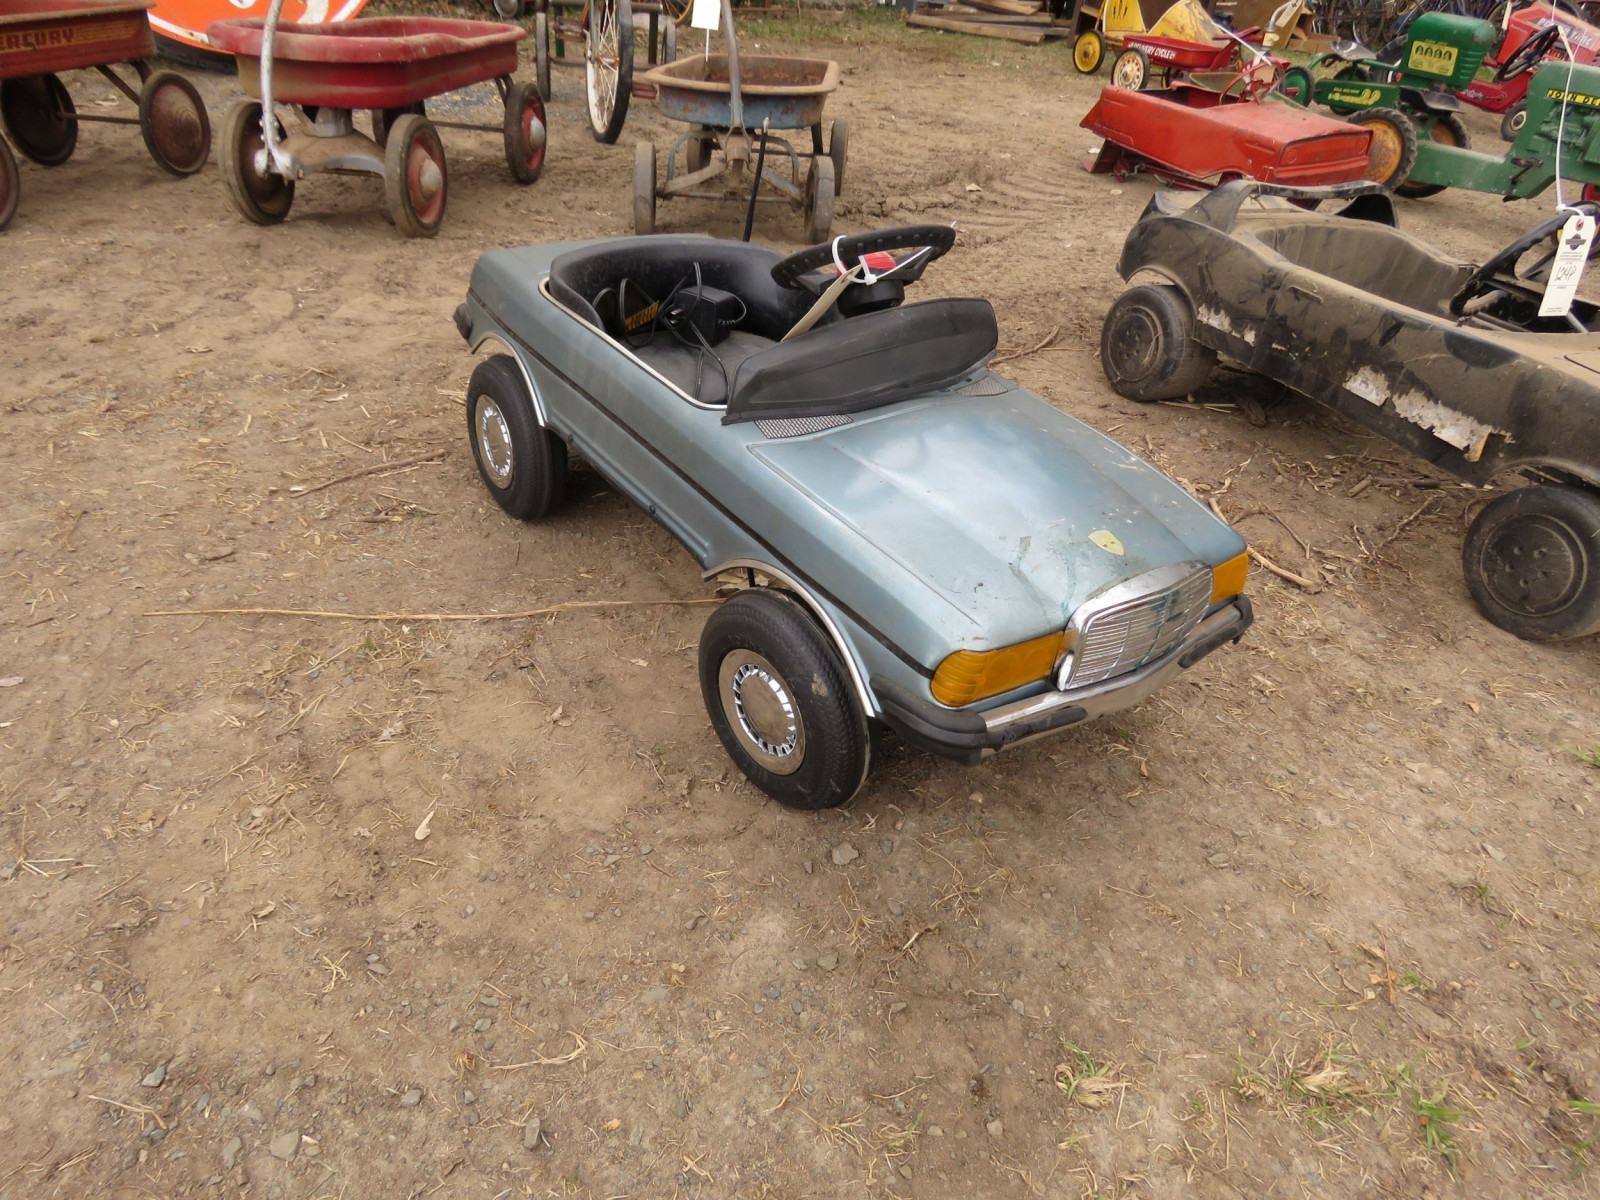 Mercedes Pedal Car - Image 1